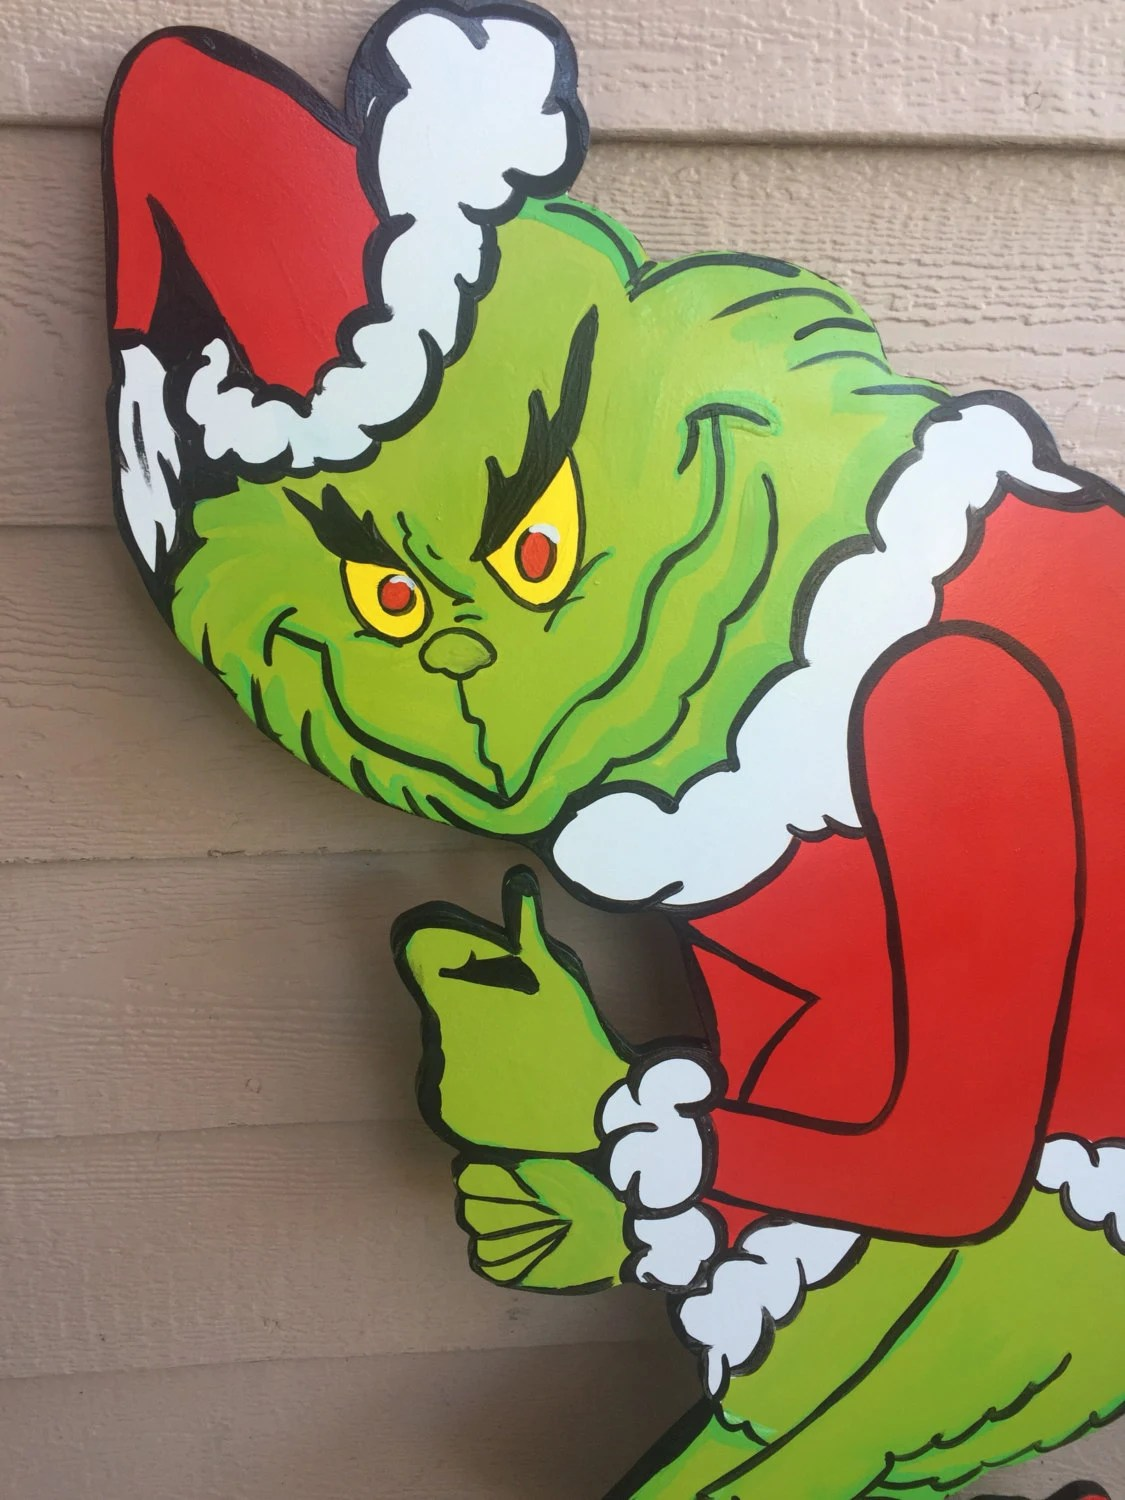 Grinch Cutout Wood Grinch Cutout Outdoor Grinch By